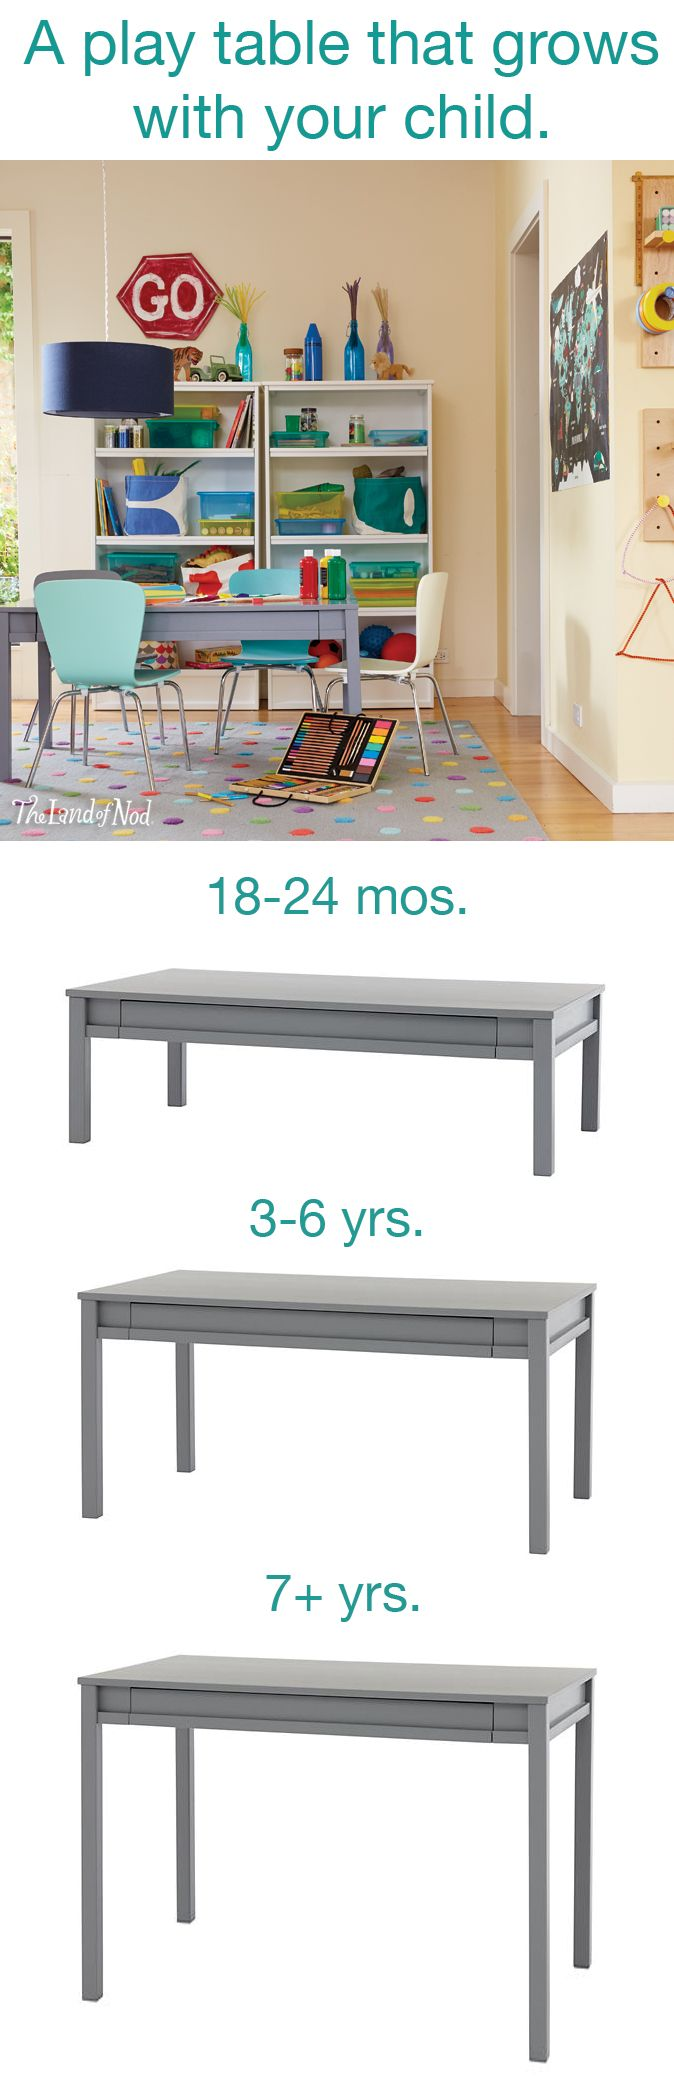 best ideas about extracurricular activity the land of nod s exclusive extracurricular activity table is designed to grow as your child grows